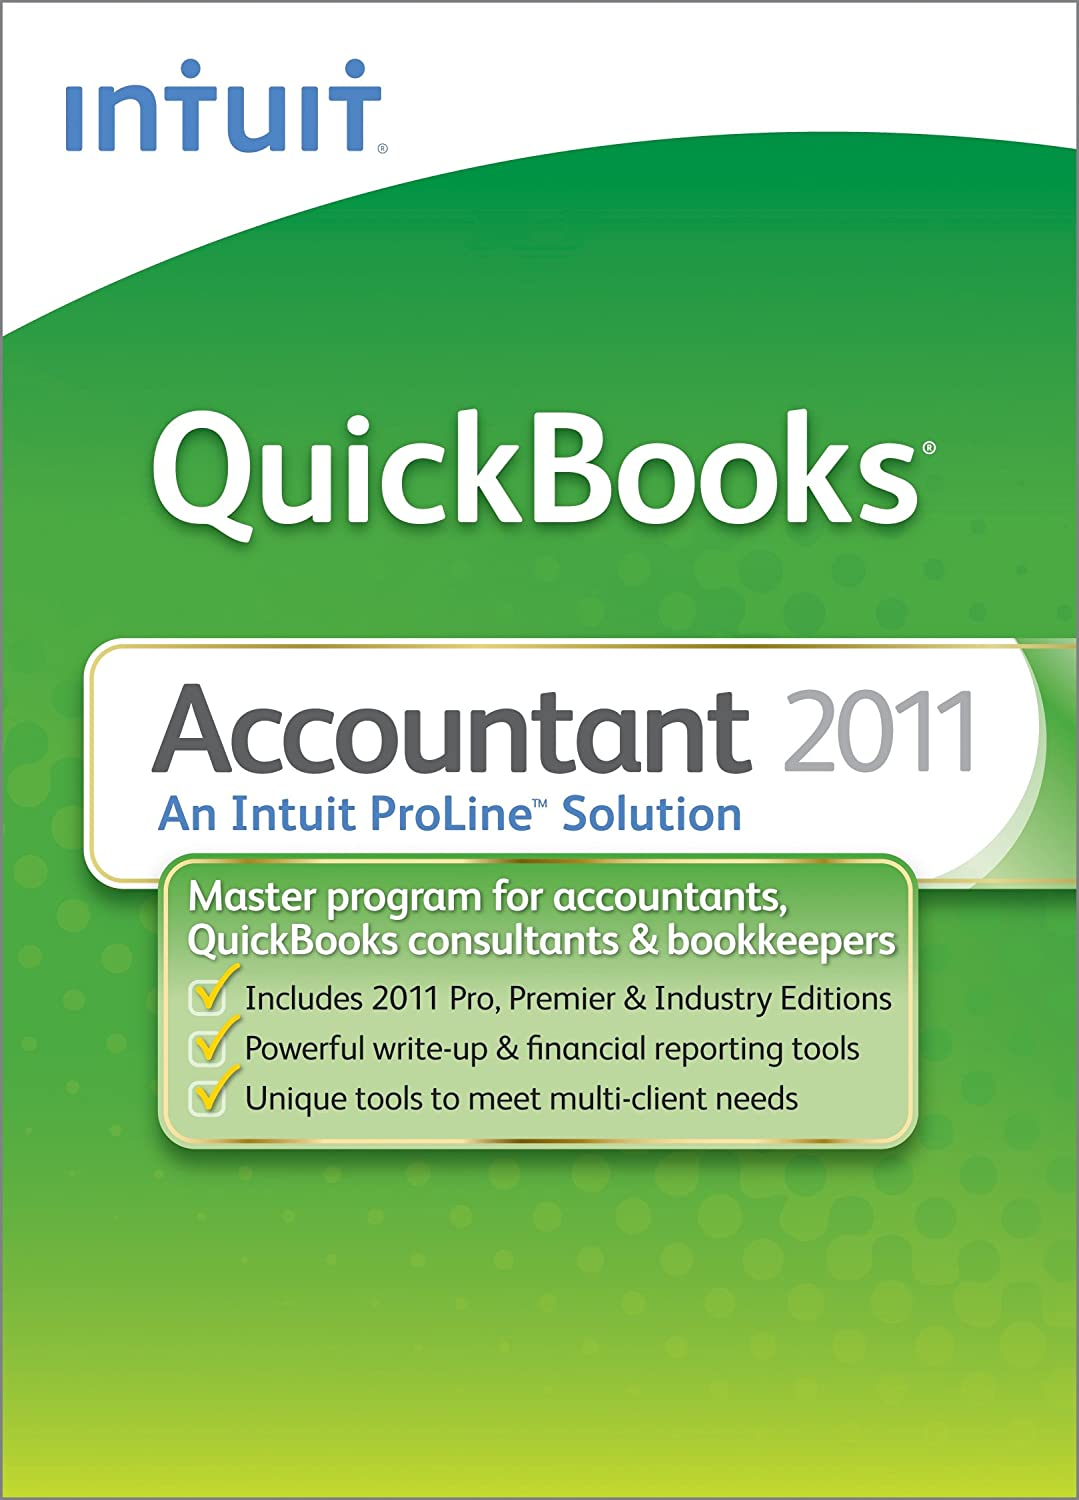 intuit quickbooks report writer Intuit® quickbooks® statement writer apdwebvids loading unsubscribe from apdwebvids cancel unsubscribe  quickbooks reports tips and tricks - duration: 14:10.